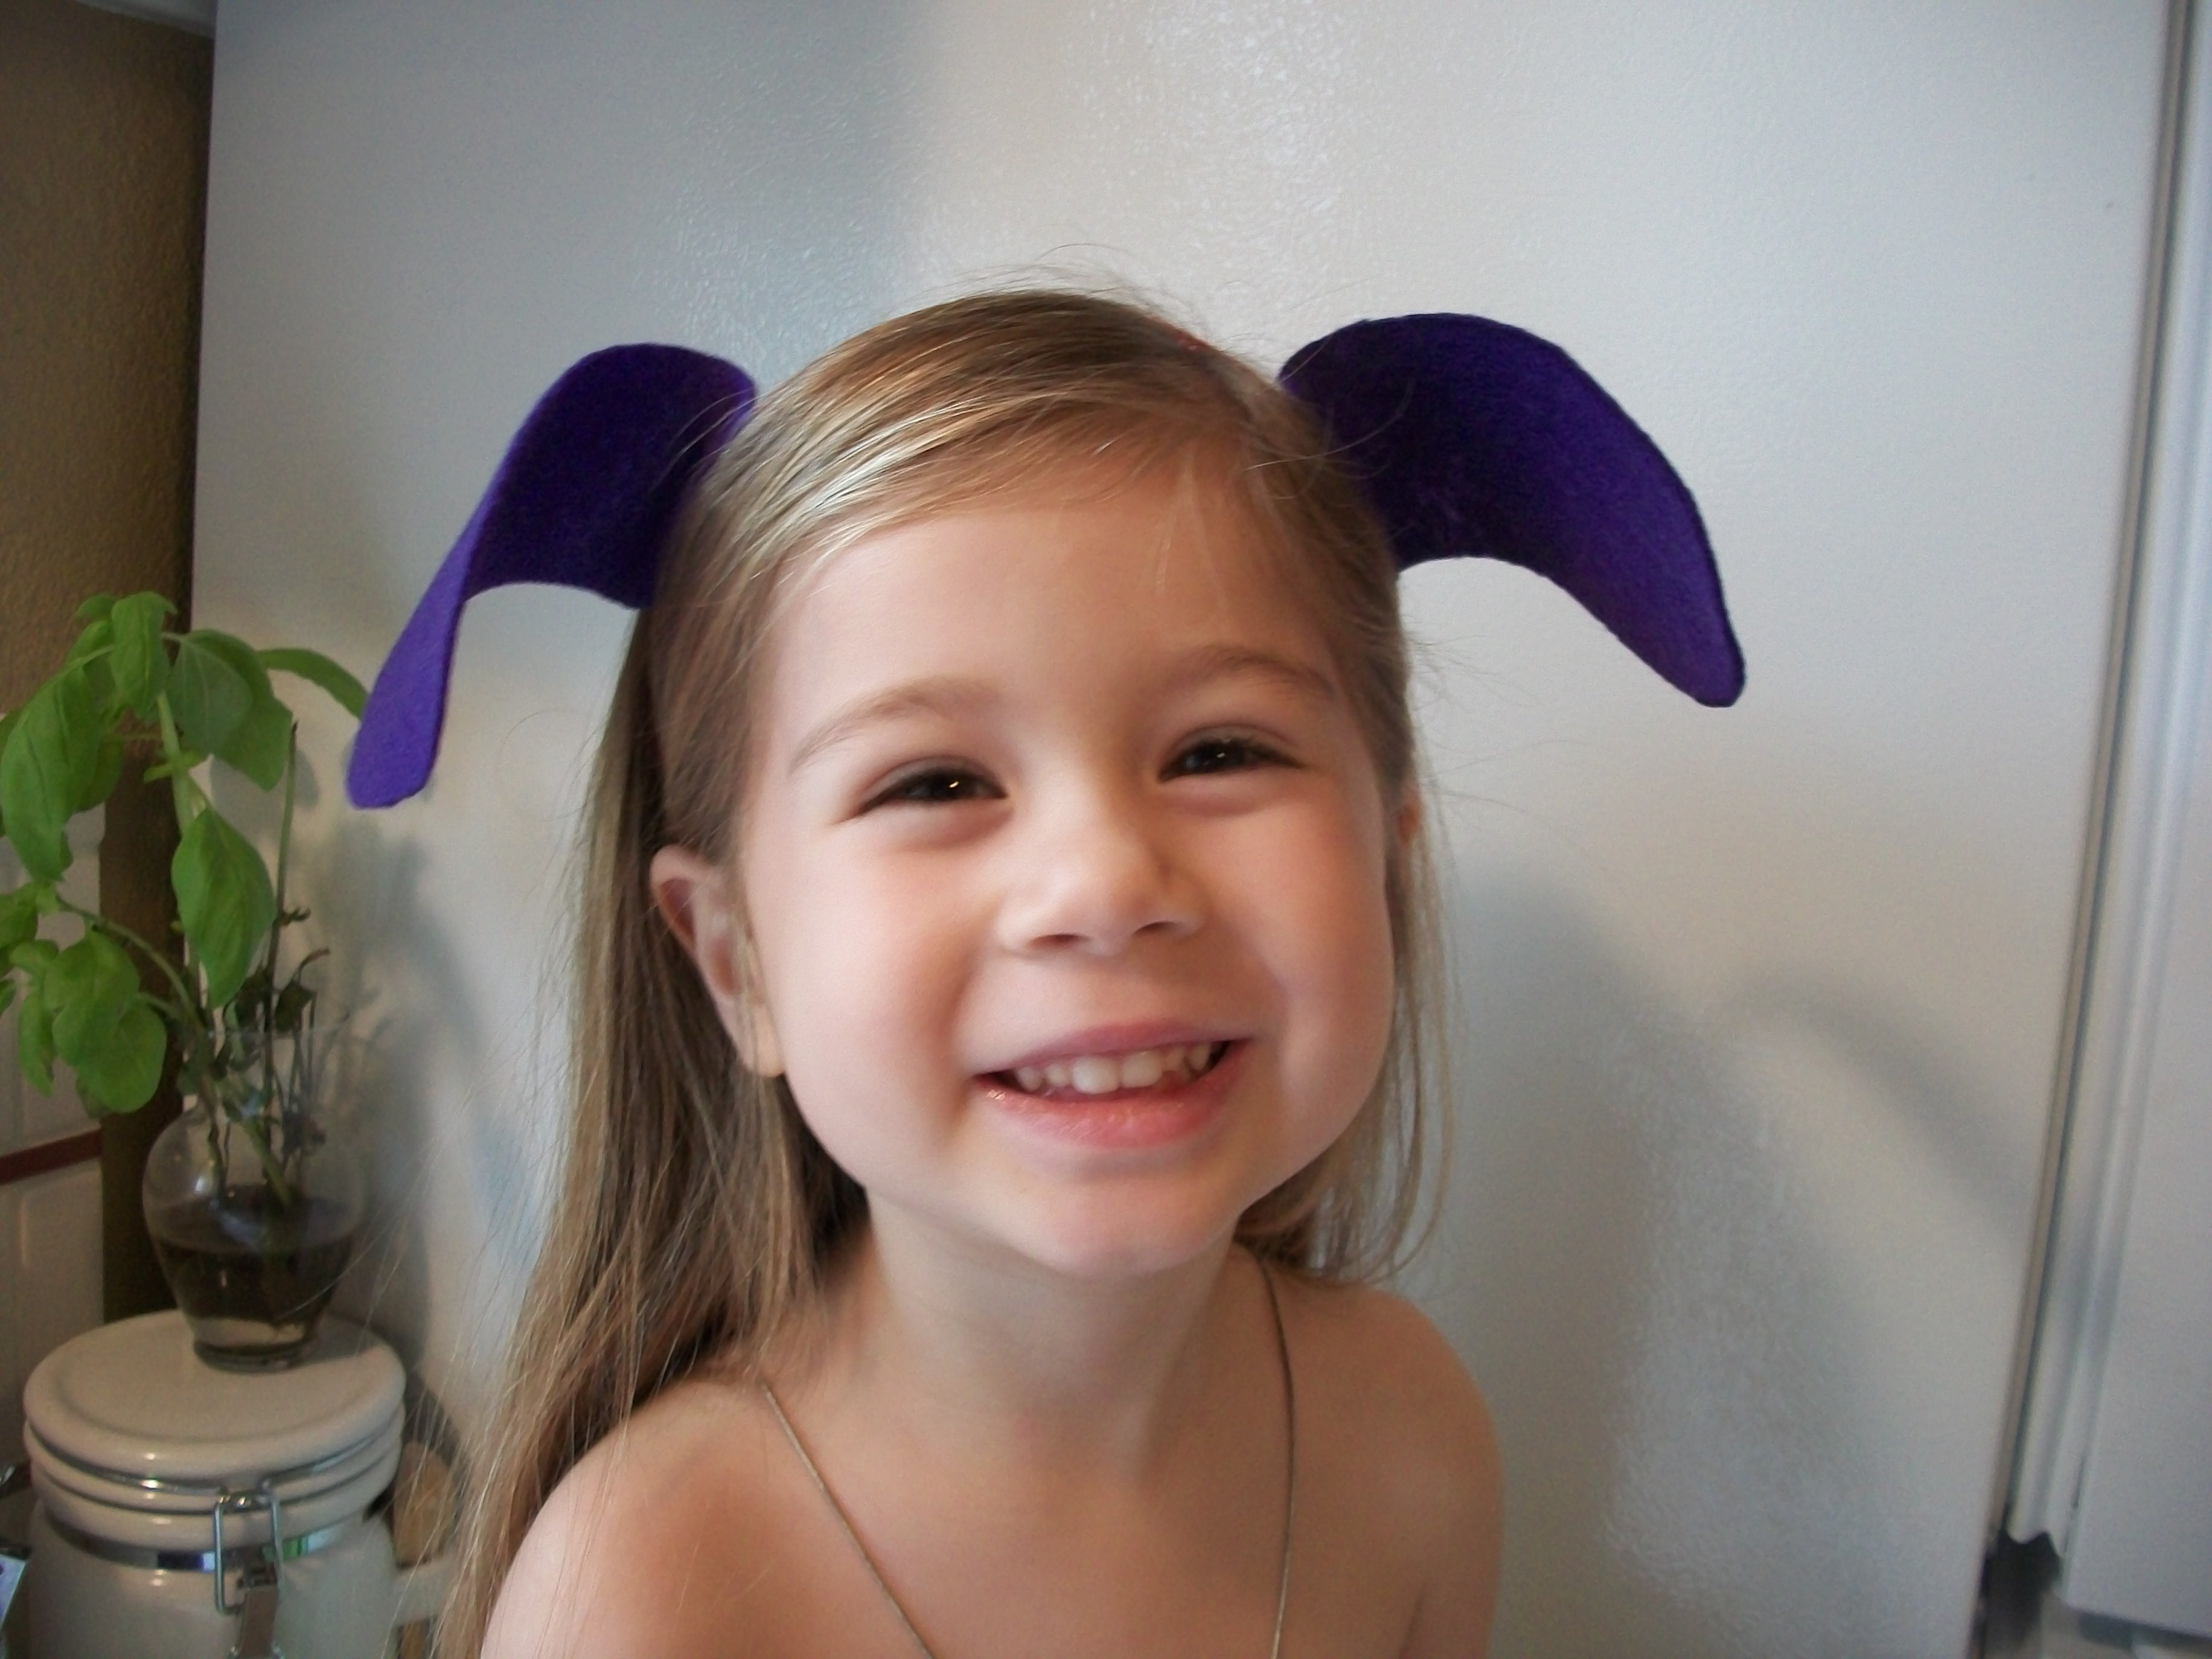 Quick And Easy Puppy Dog Ears For Your Preschooler To Wear